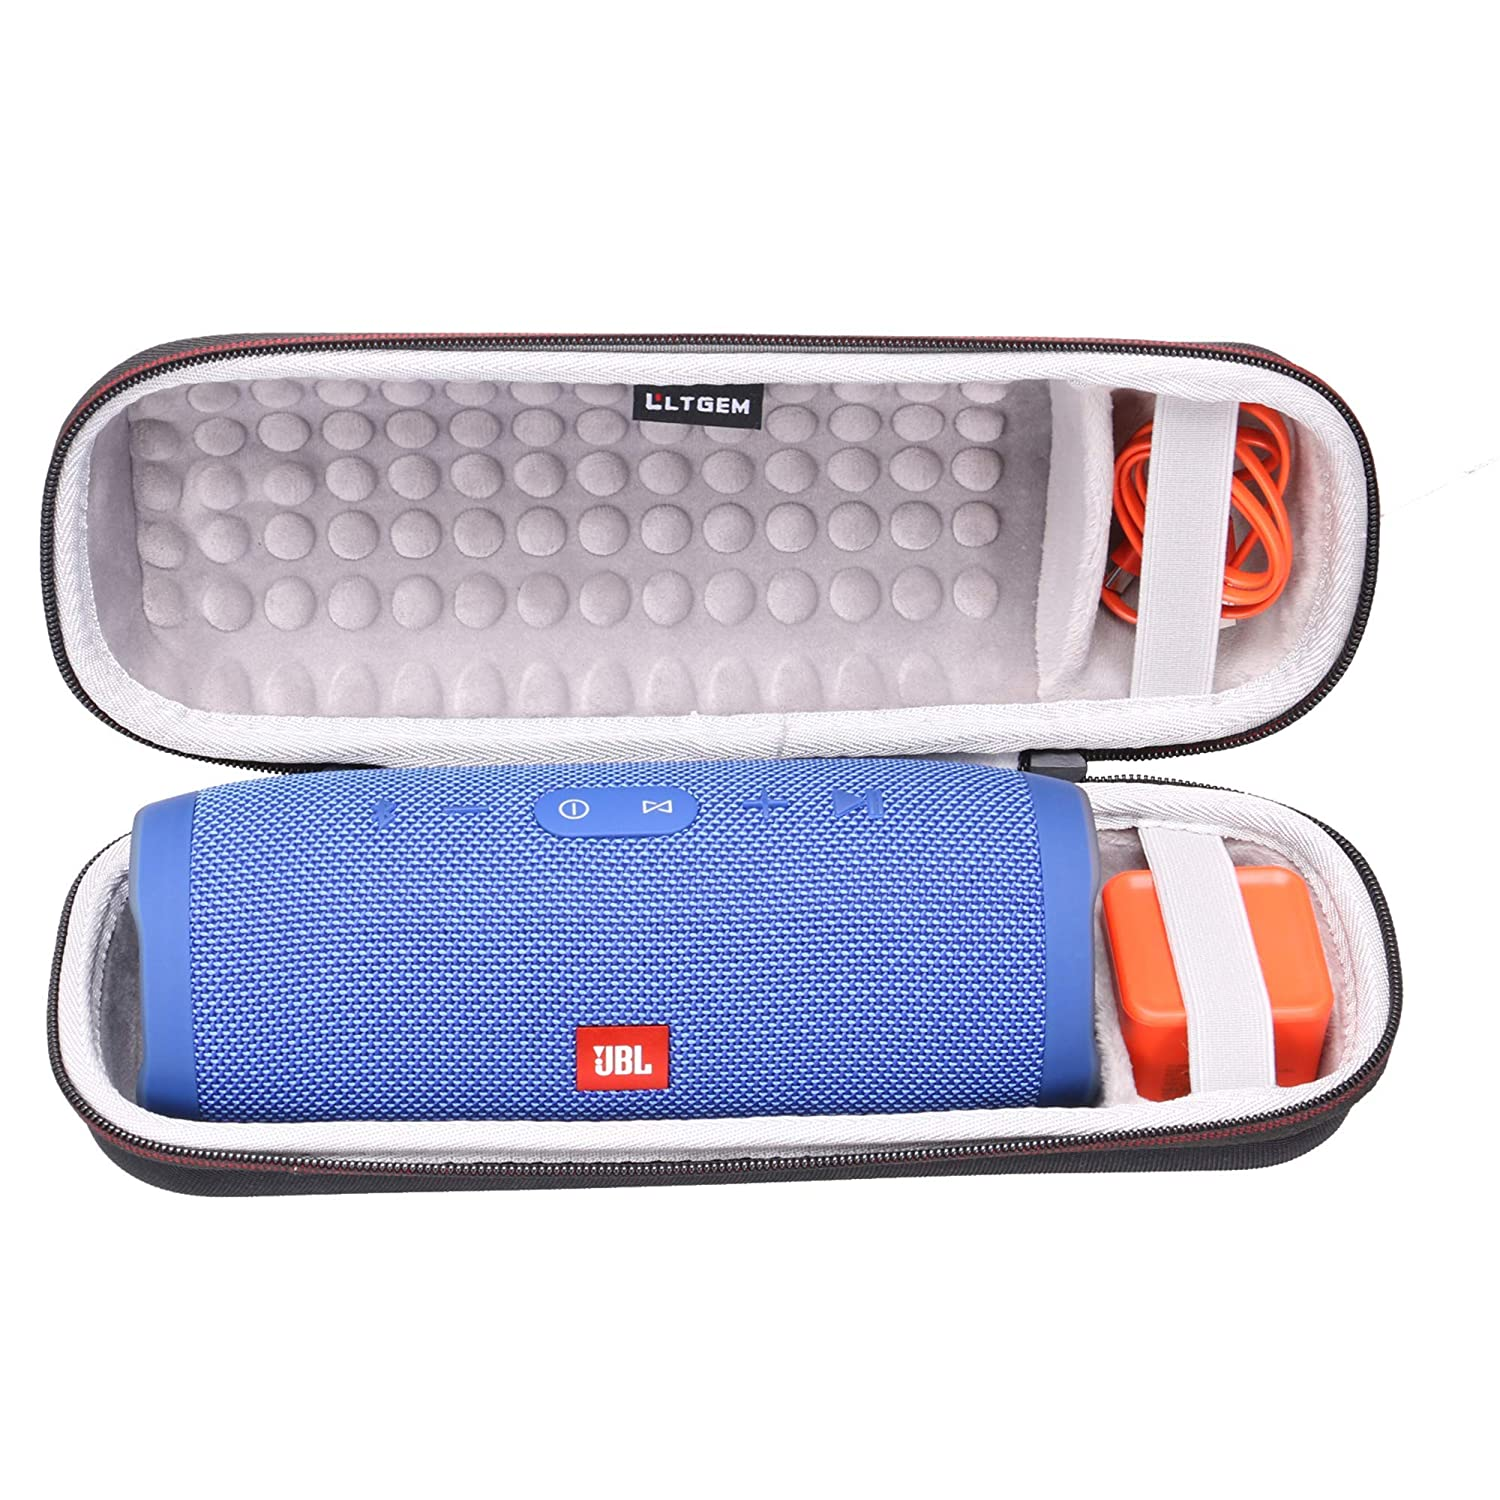 LTGEM Case for JBL Charge 3 Waterproof Portable Wireless Bluetooth Speaker Fits USB Cable and Charger.